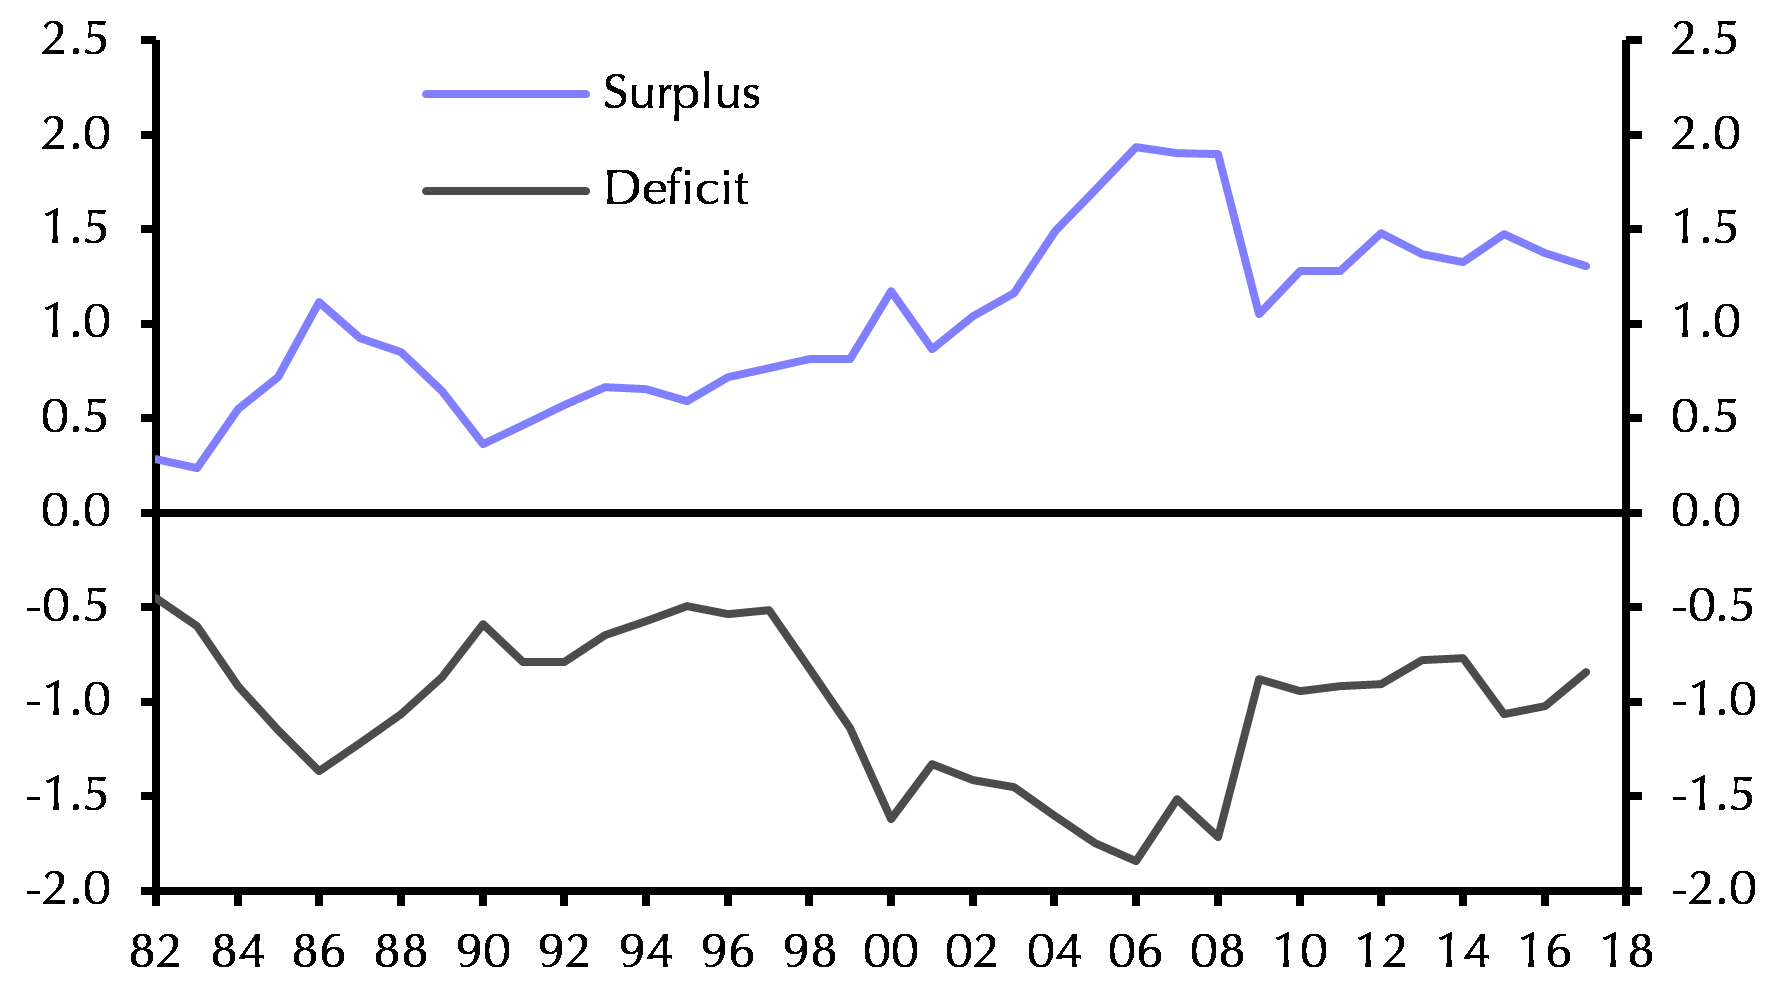 Combined Current Account Positions of Major Surplus & Deficit Economies (% of World GDP)